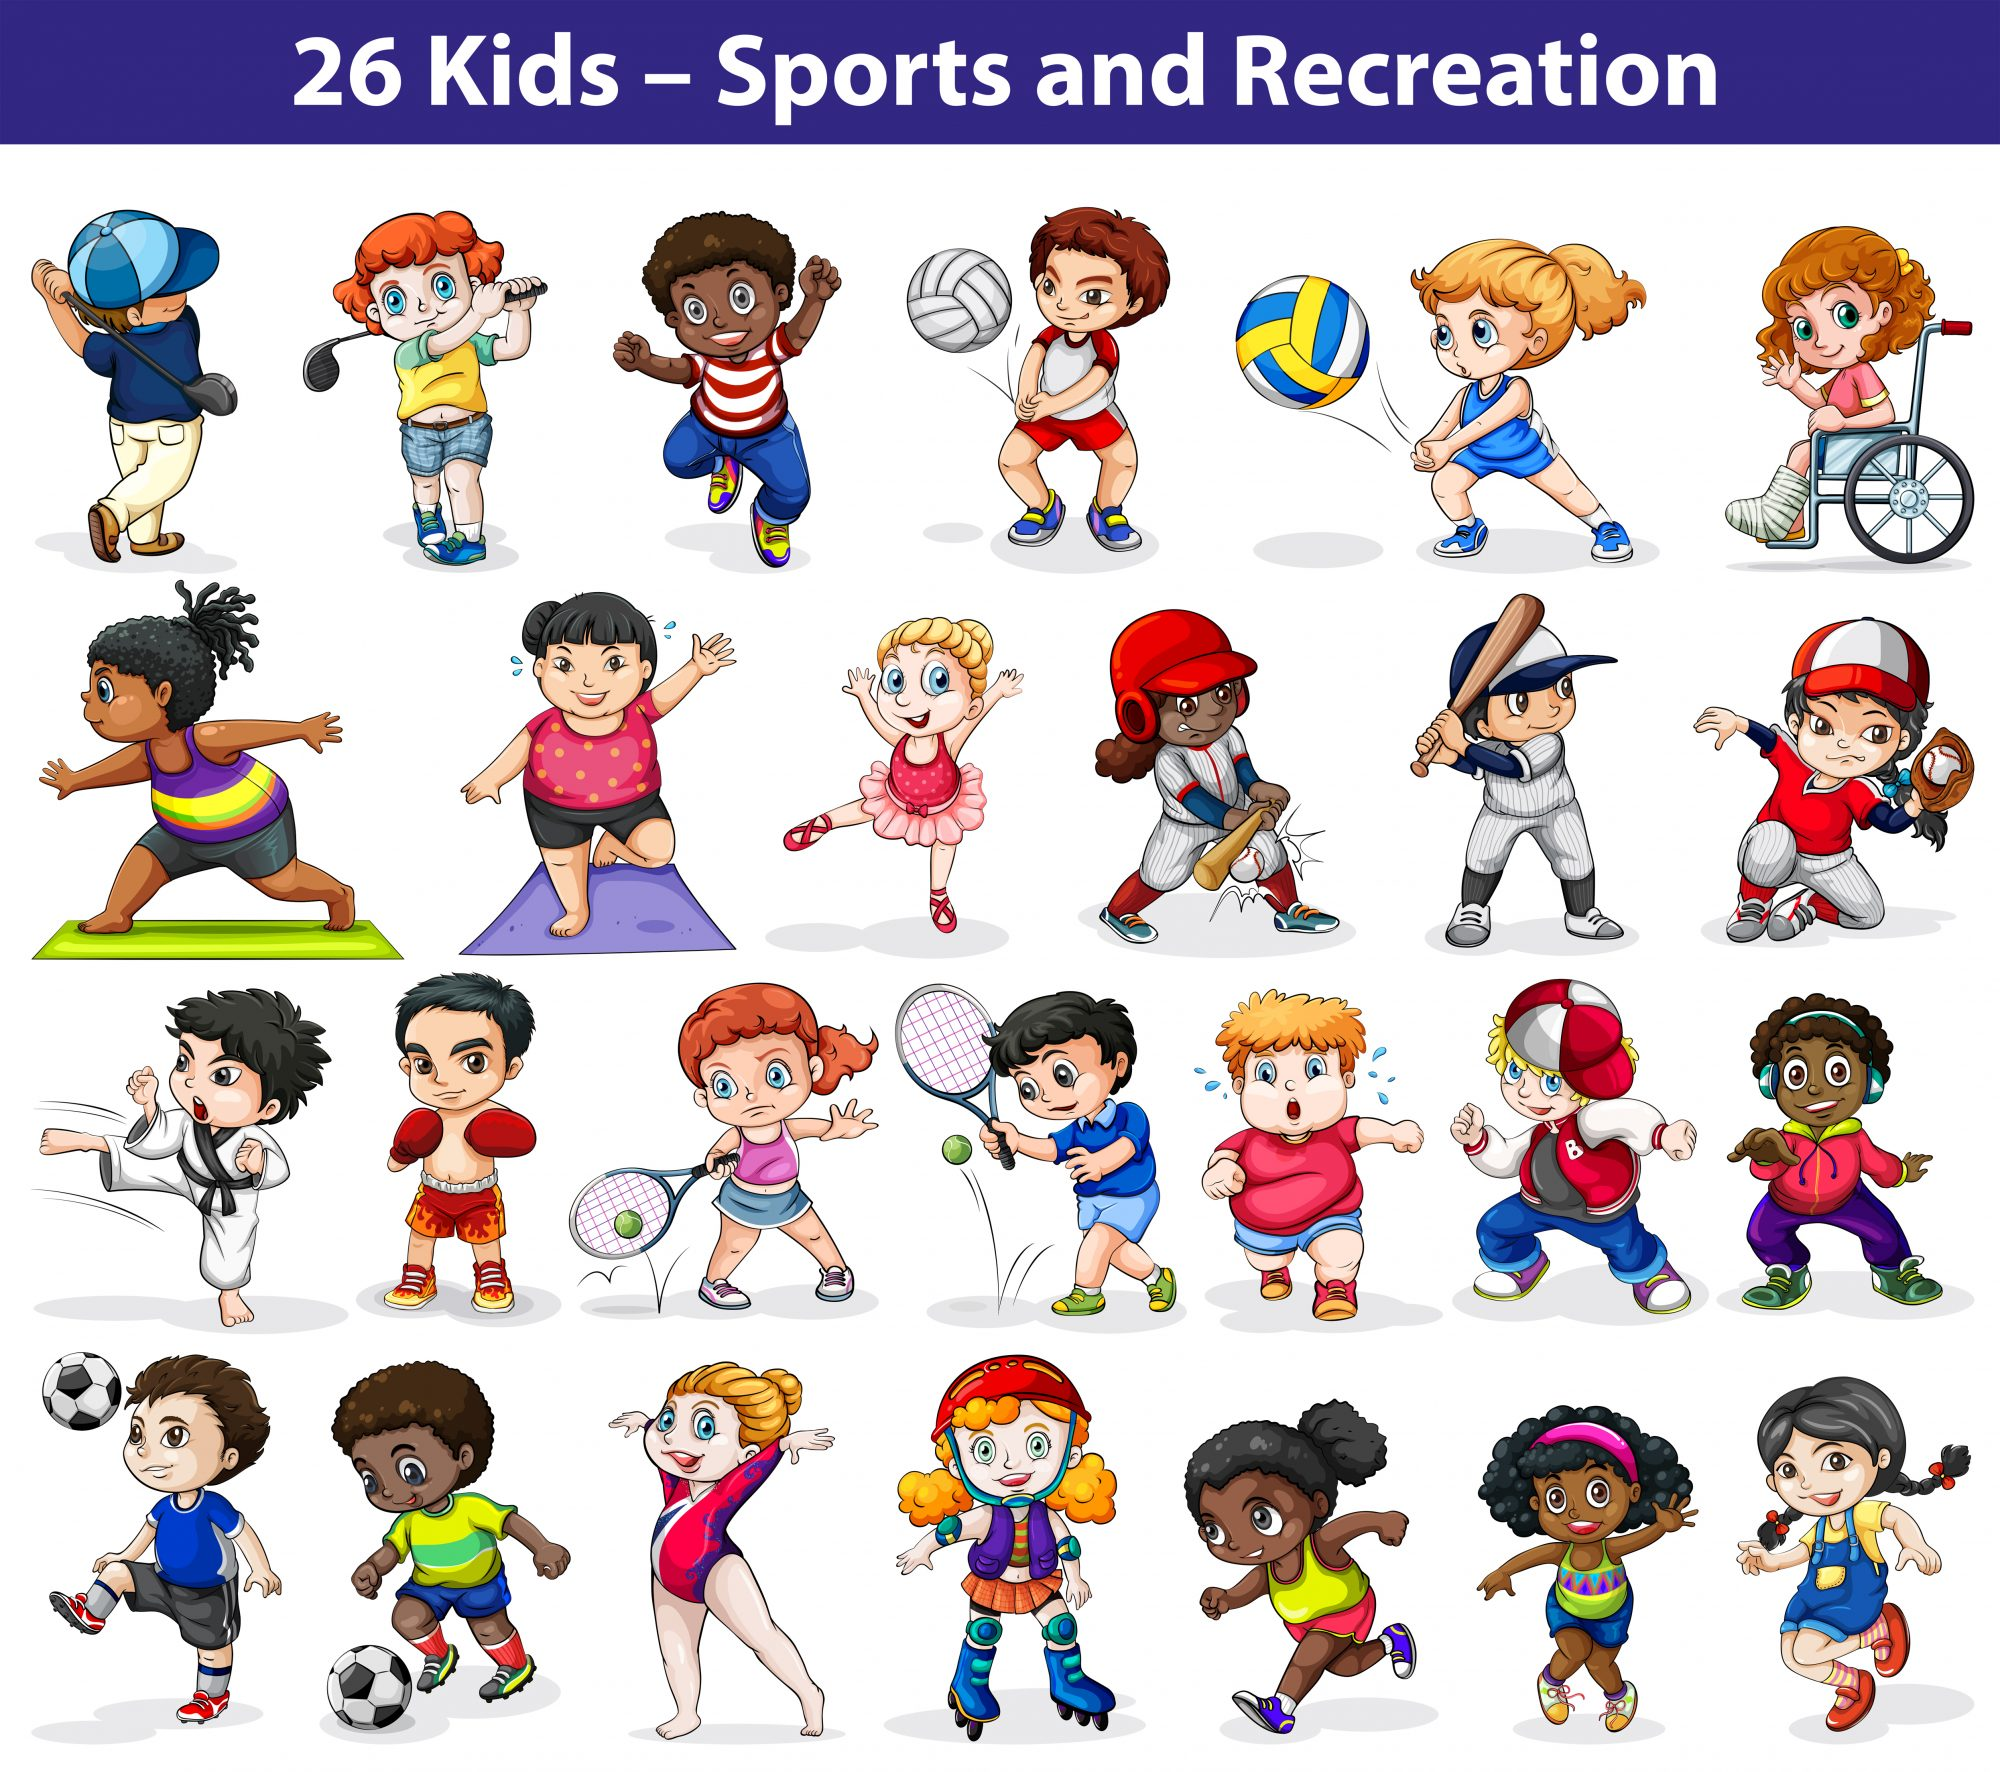 Kids engaging in different activities